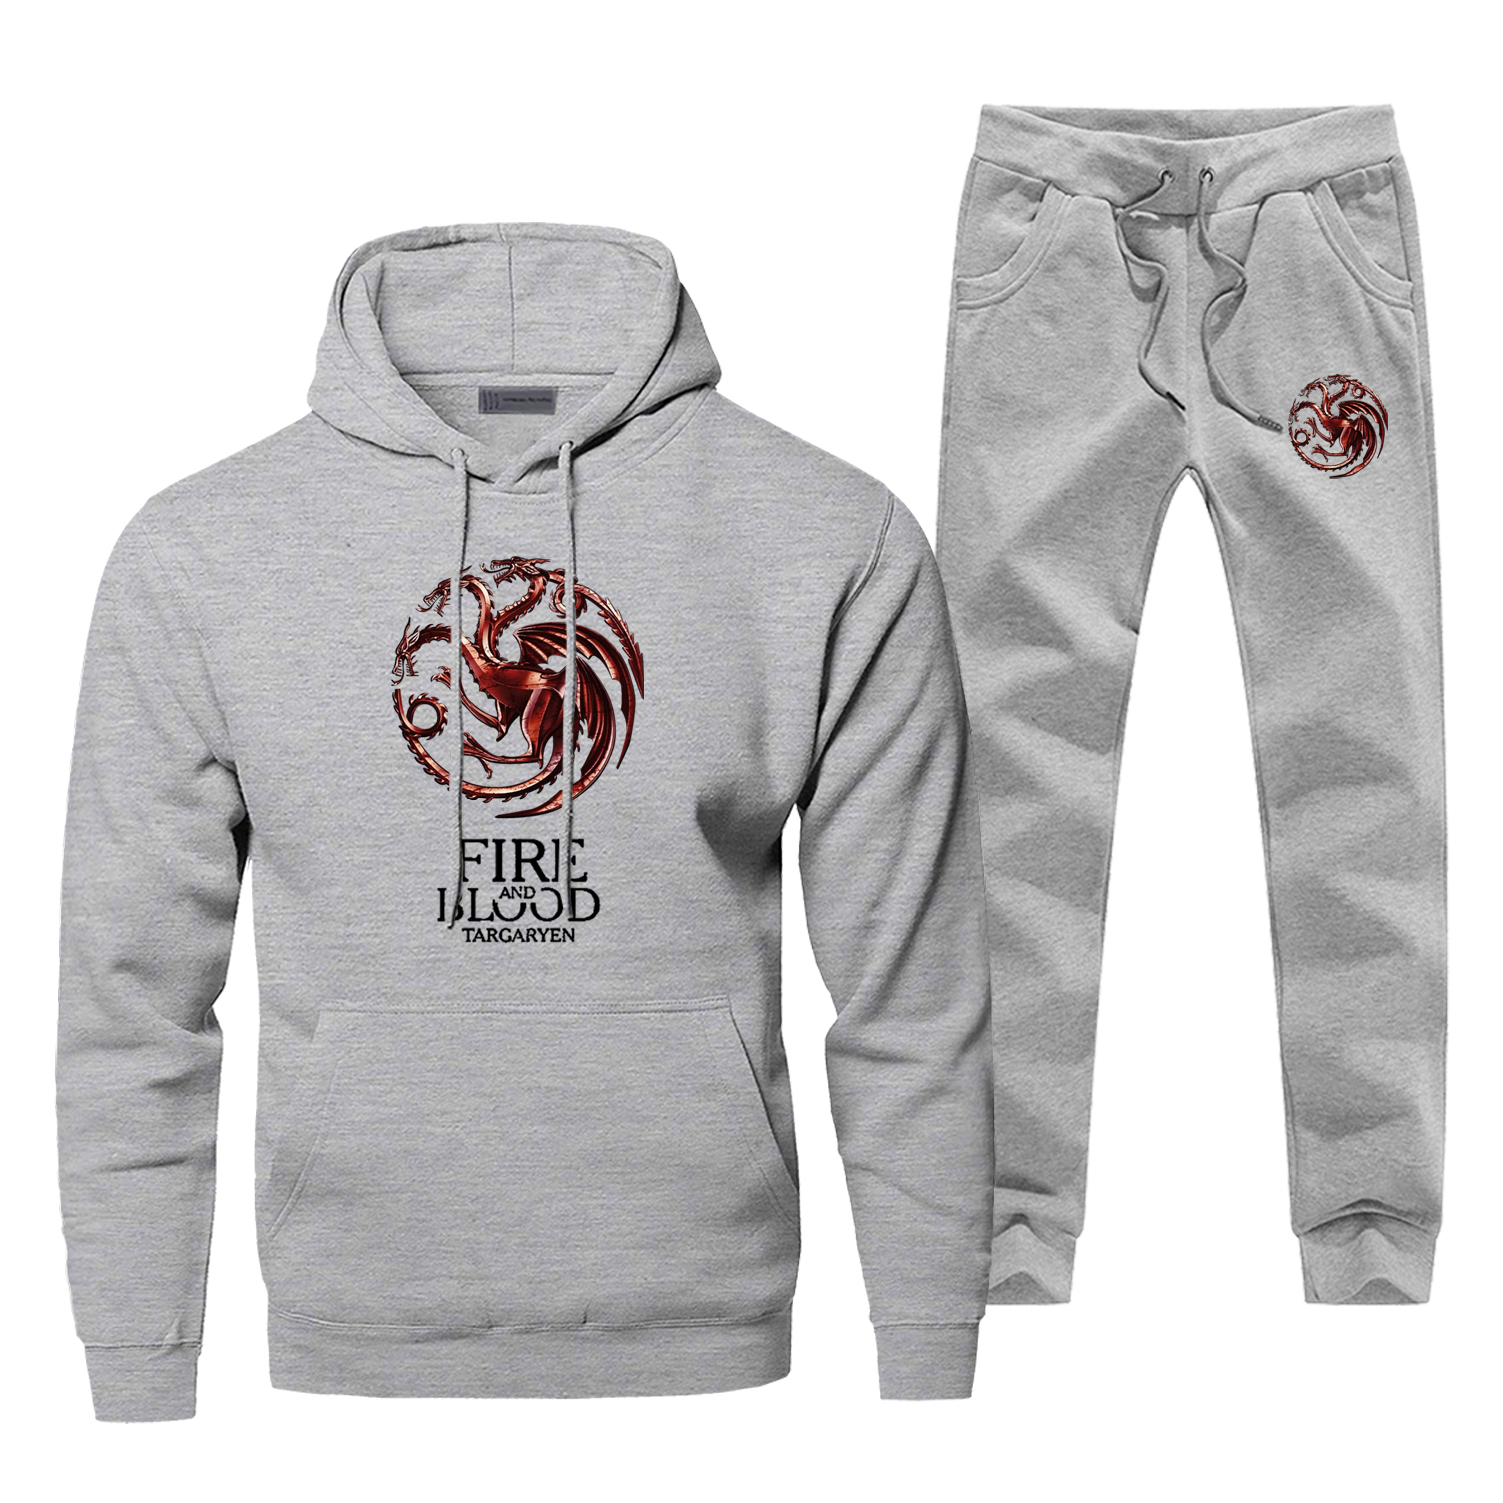 Game Of Thrones Tracksuit Fire And Blood Warm Hoodies +pants Mens 2Pcs Sets House Targaryen Sweatshirt Sportswear Sweatpants